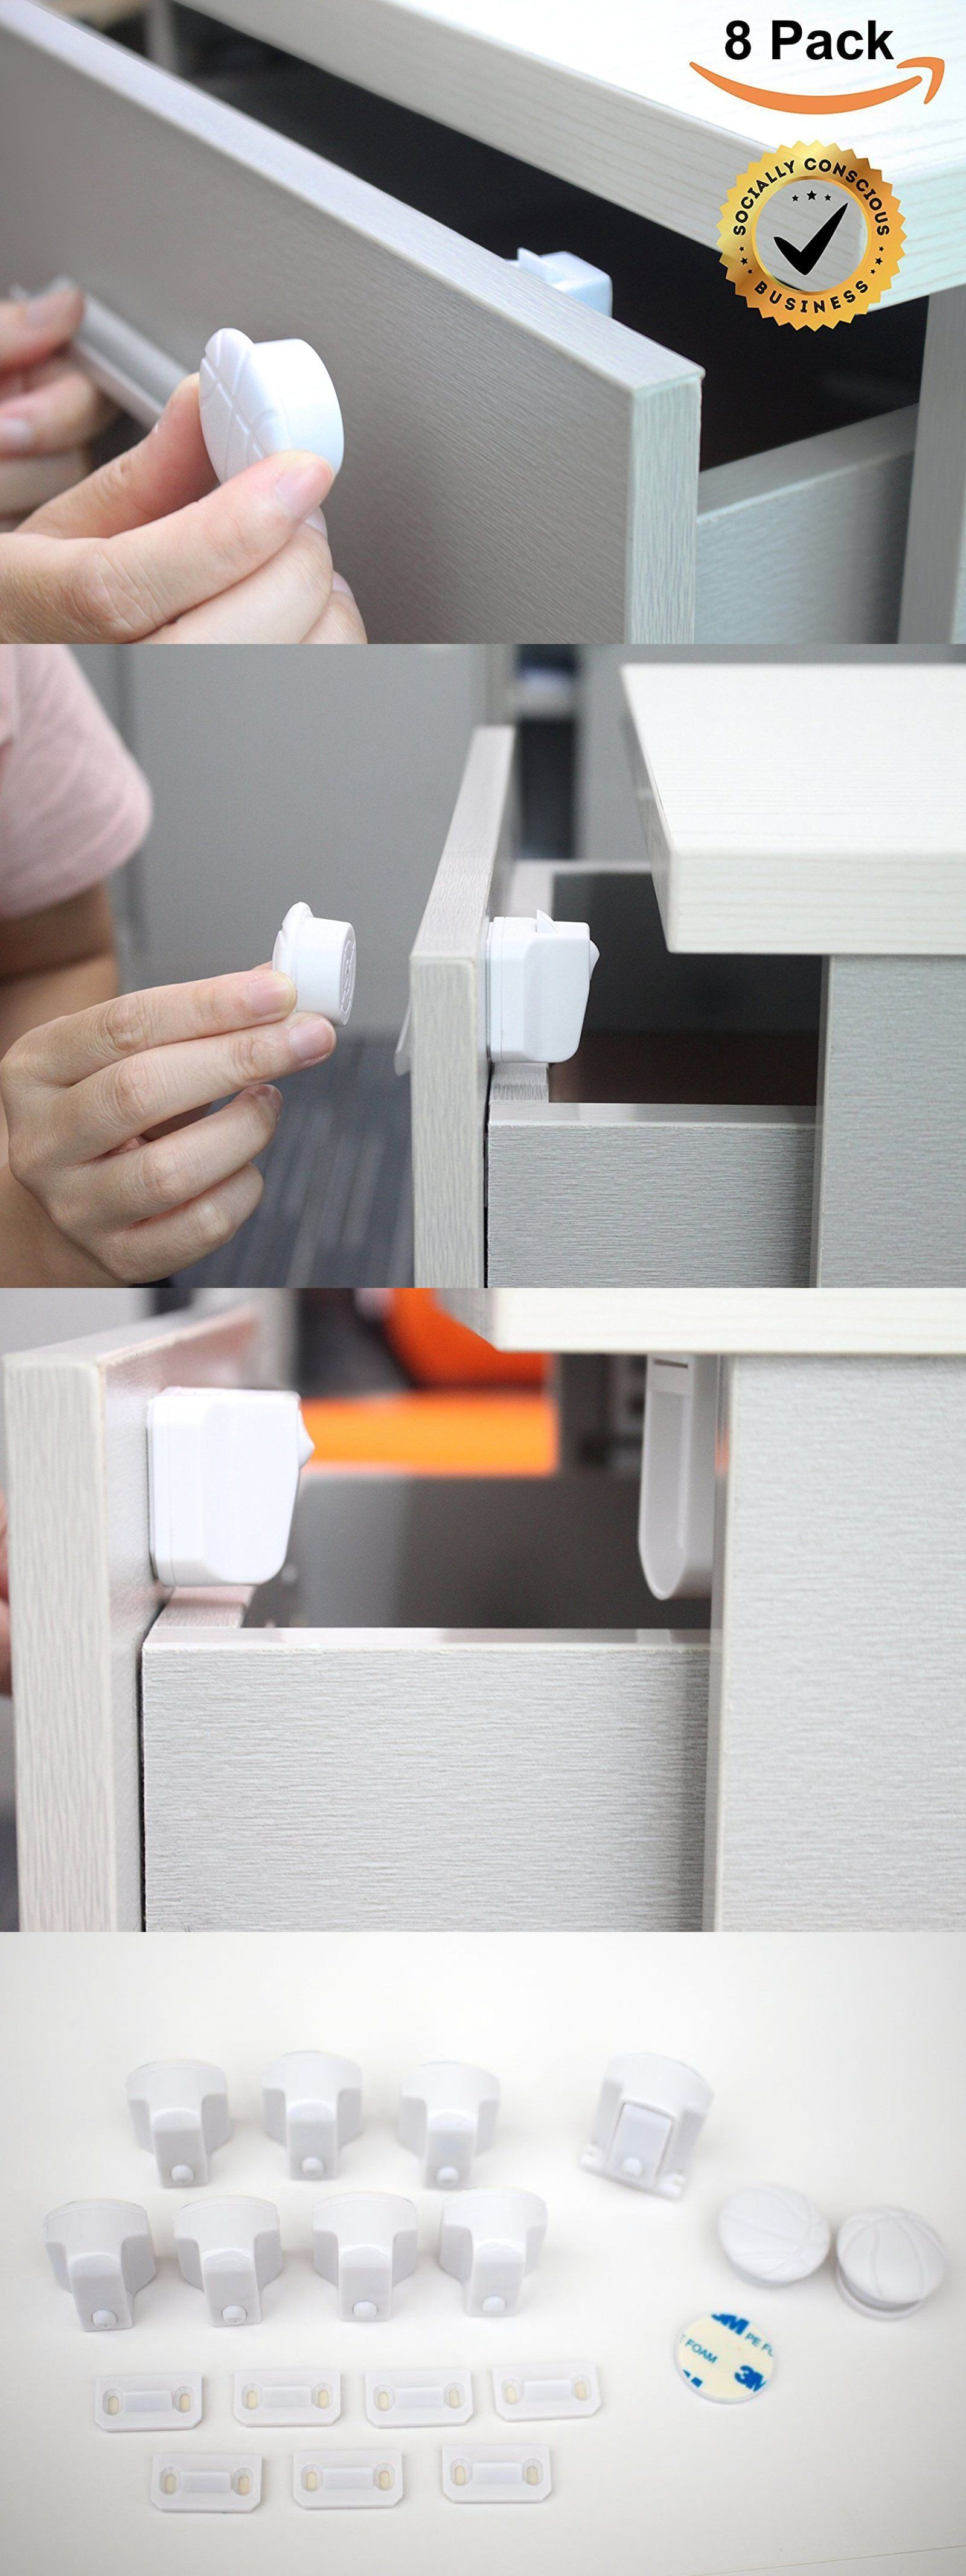 Lock Child Safety Baby Kids Proof Drawers